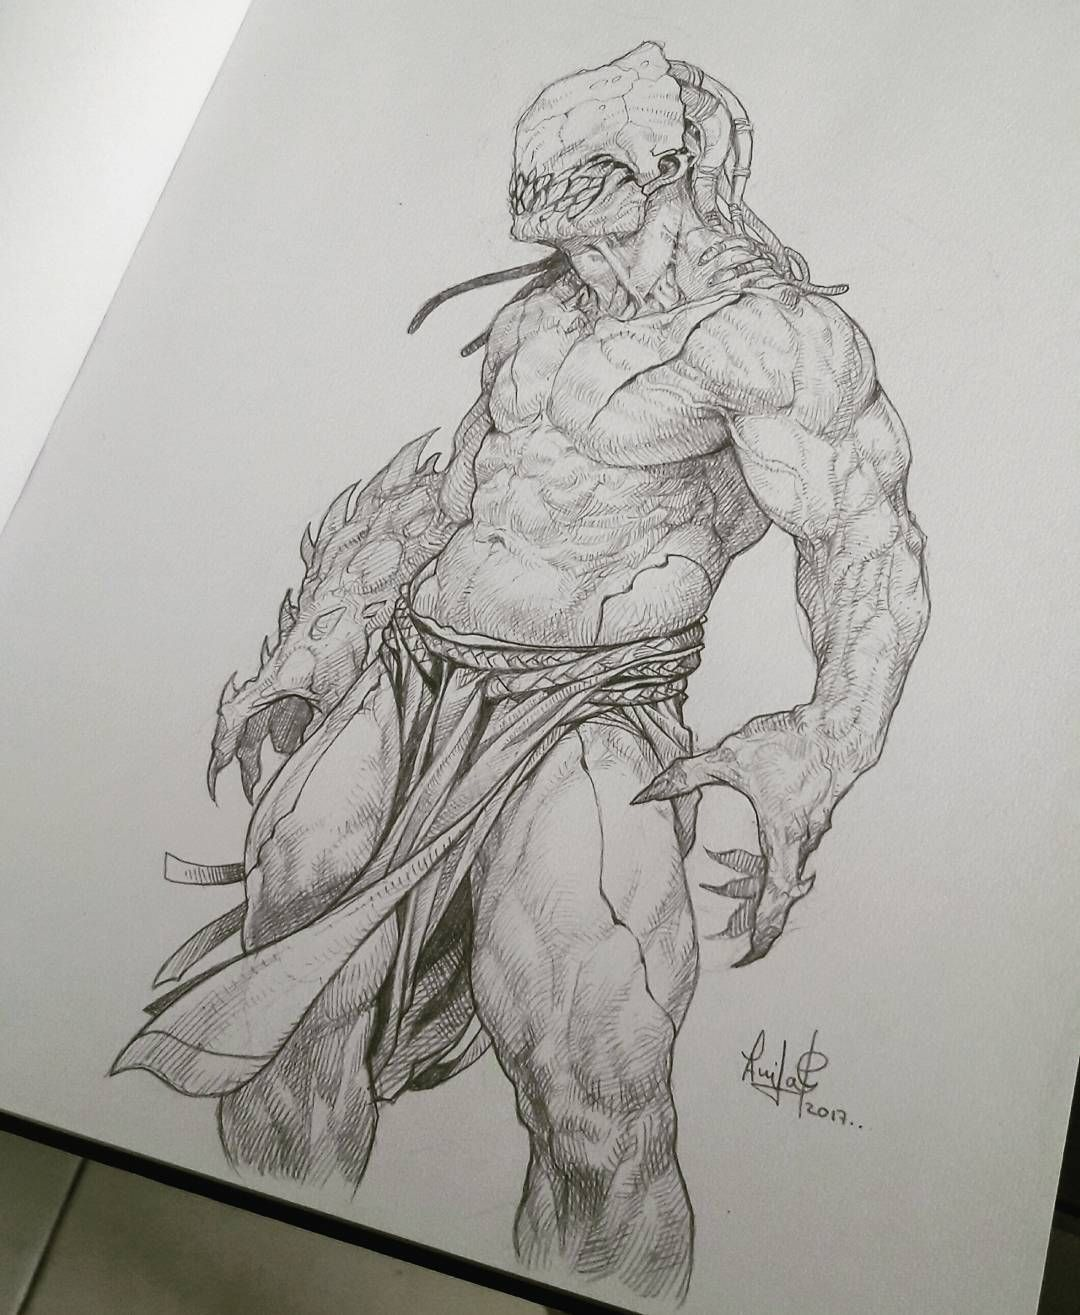 Pin by Mohammed Anuz on Concept Art in 2019 | Art sketches ...